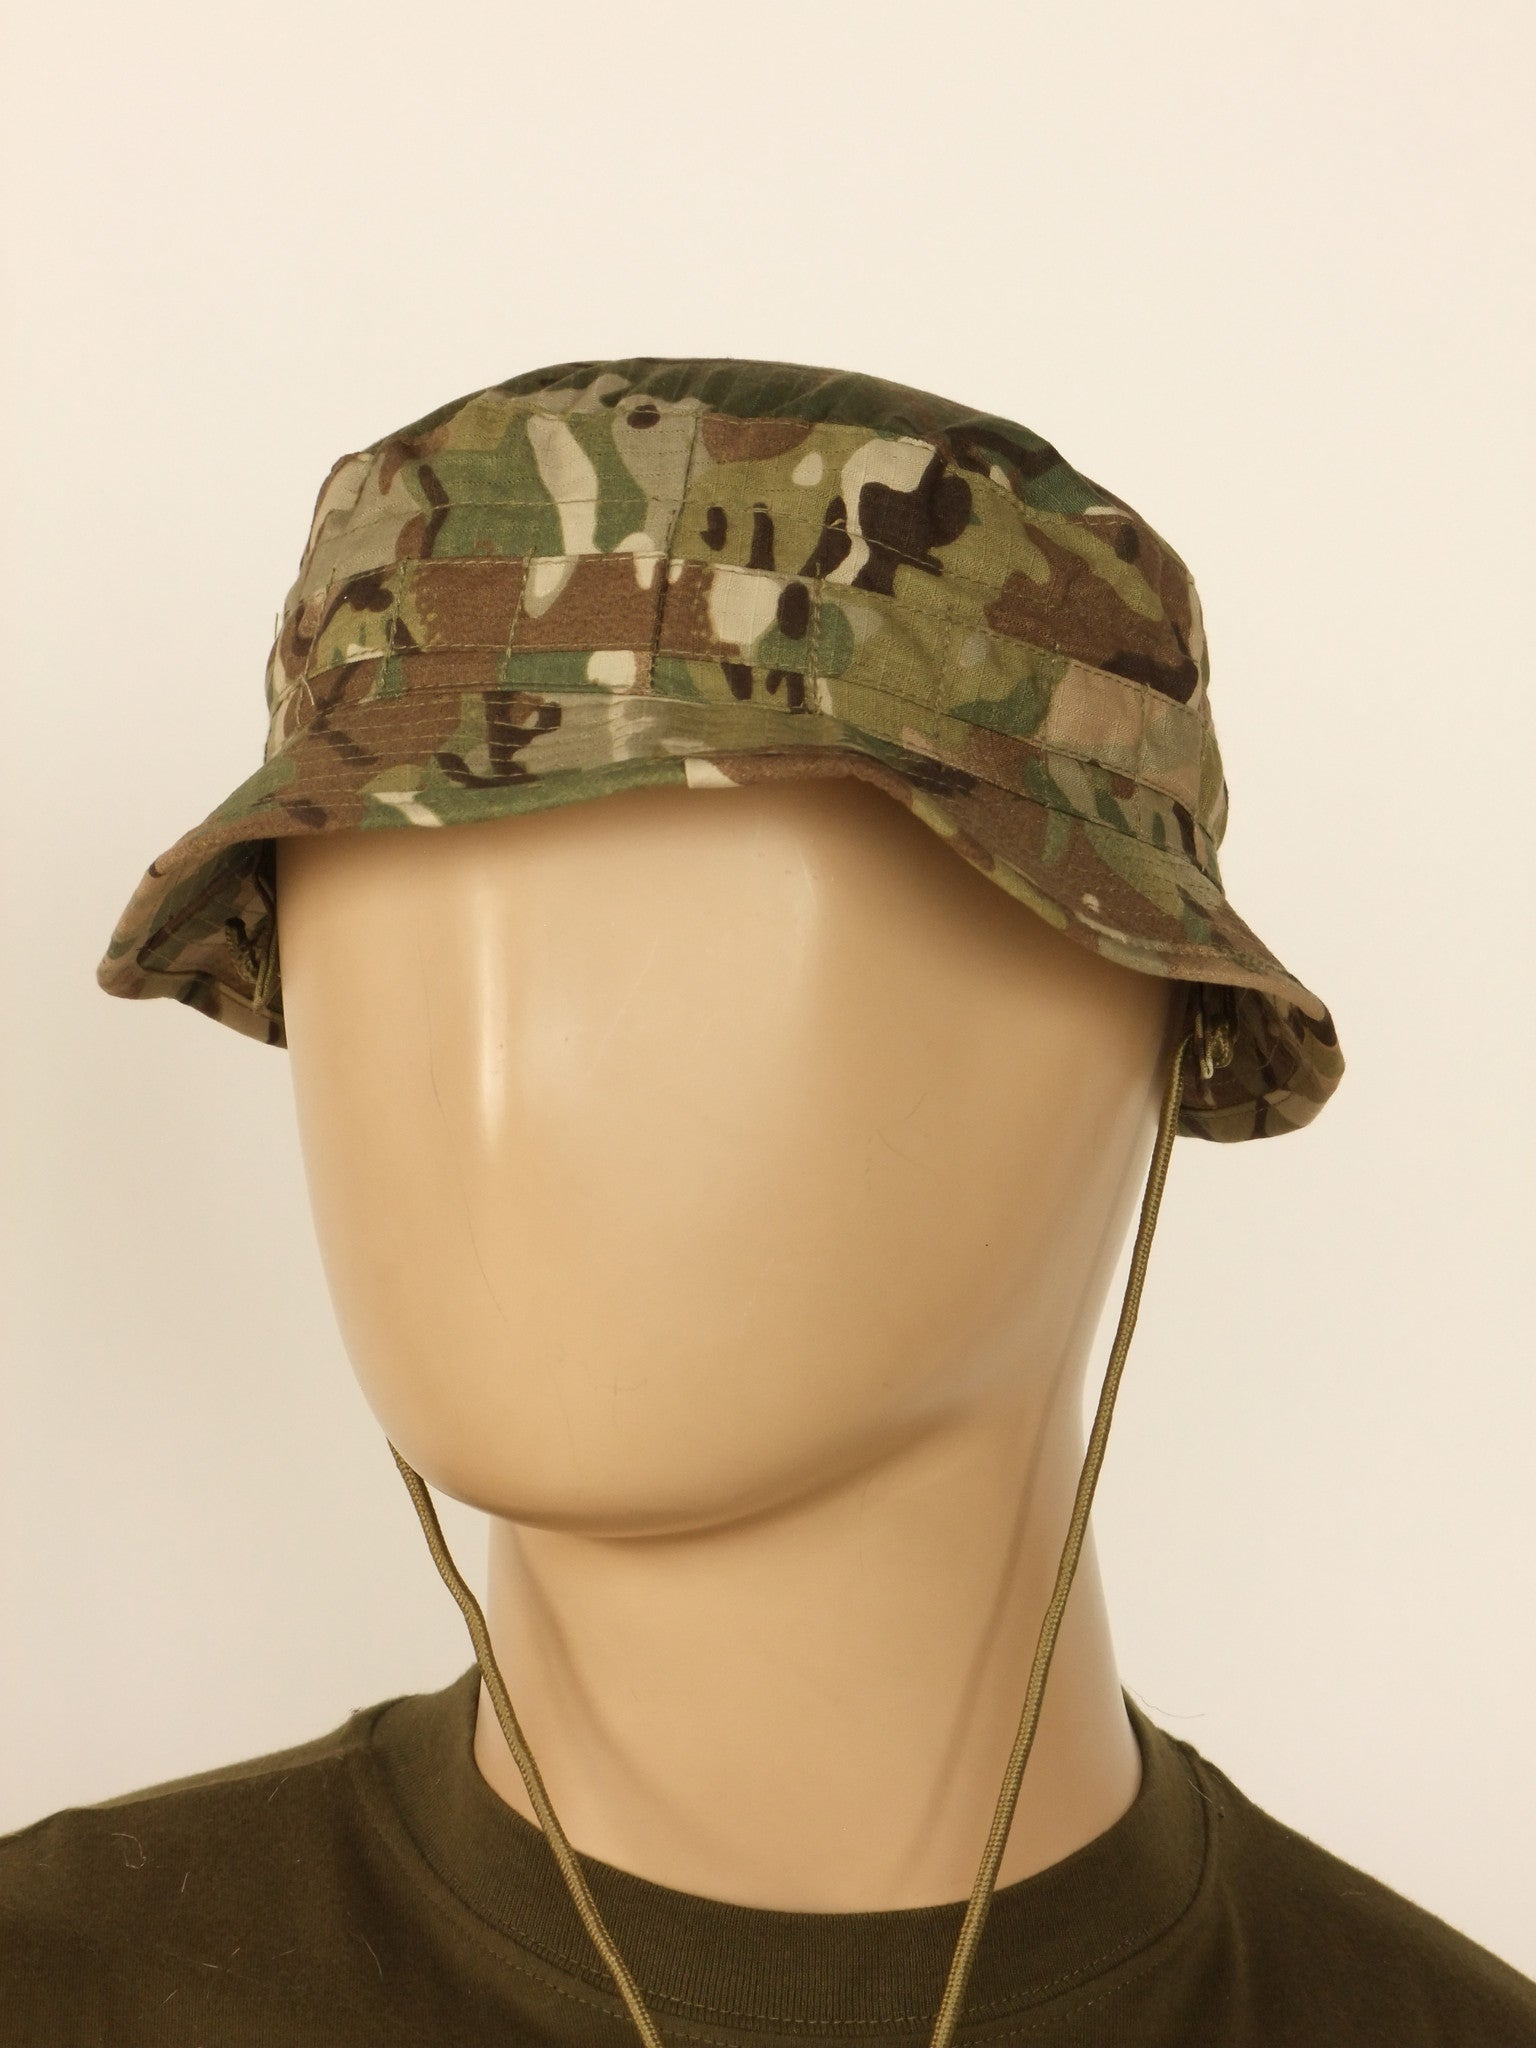 British MTP tactical hat